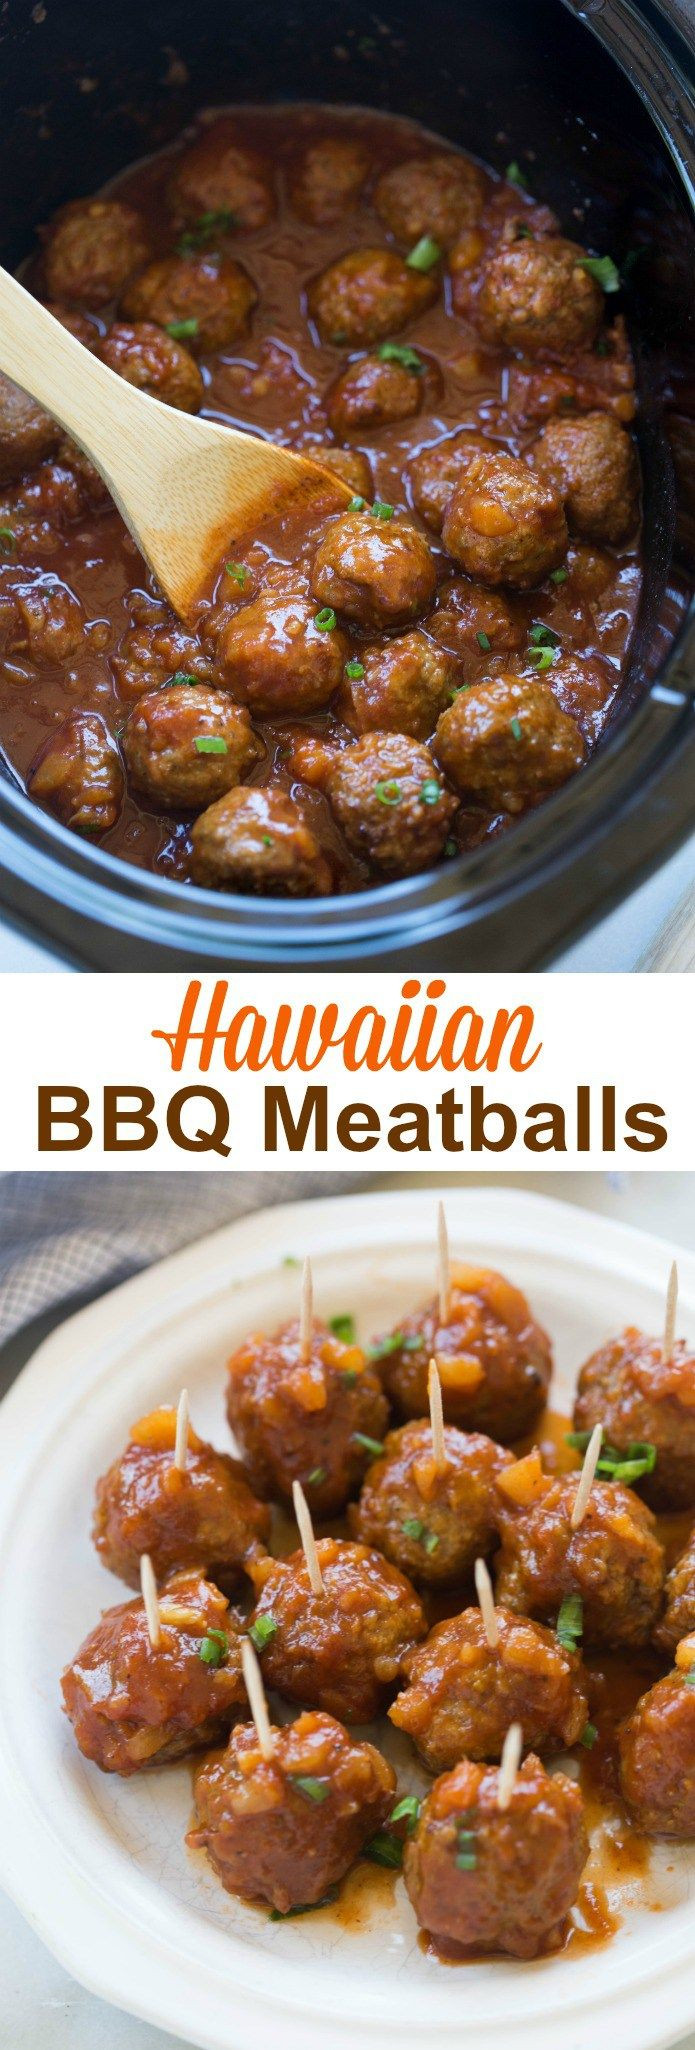 Hawaiian Main Dishes  882 best Tastes Better From Scratch images on Pinterest